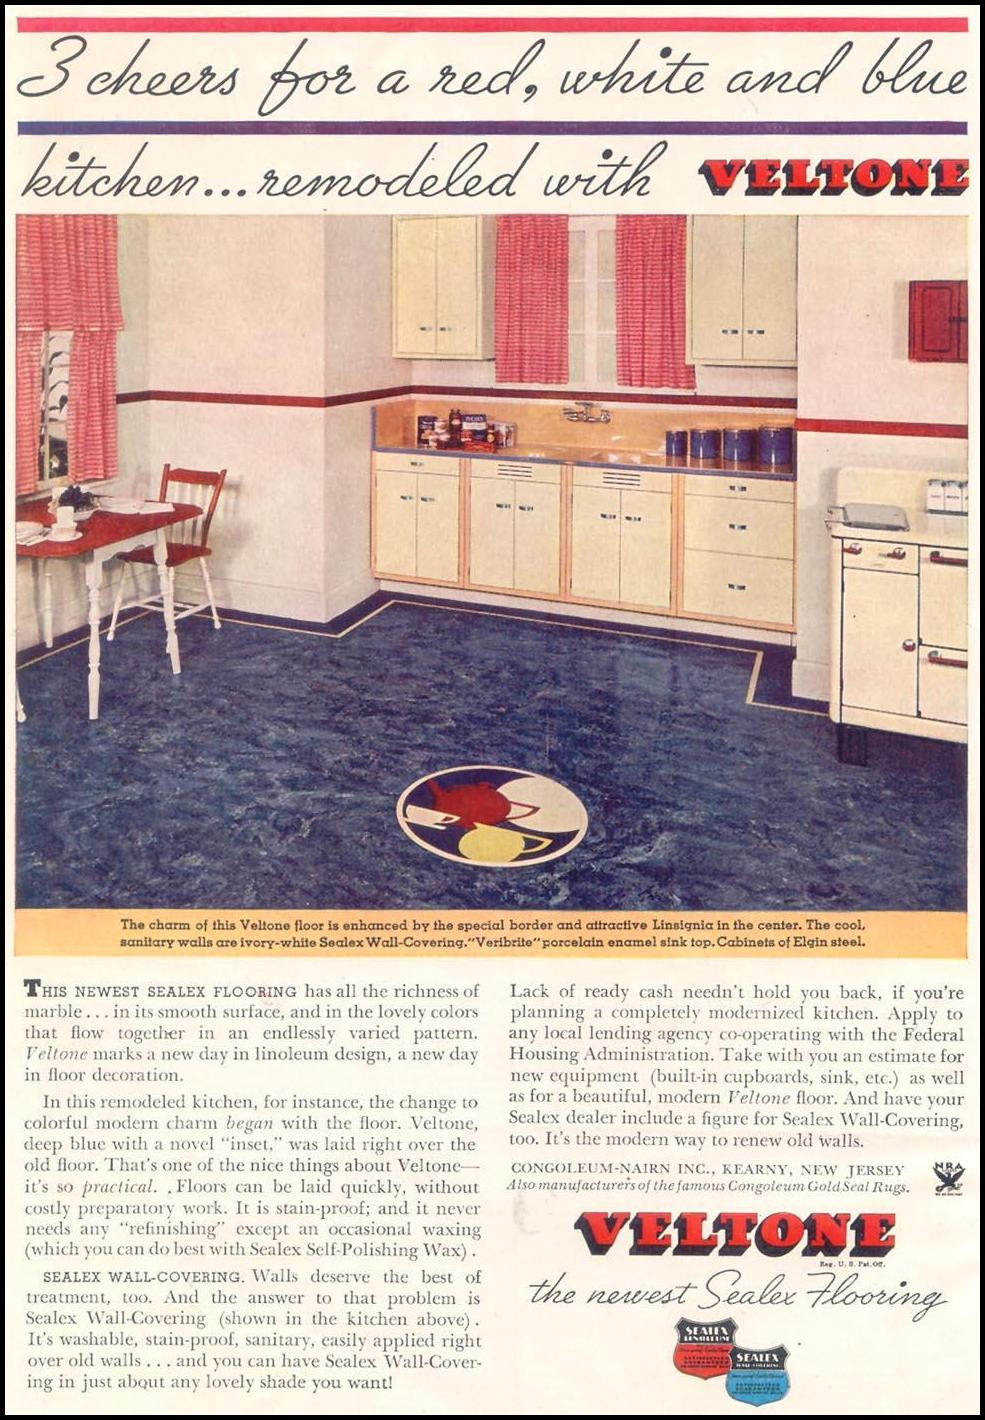 VELTONE SEALTEX FLOORS GOOD HOUSEKEEPING 03/01/1935